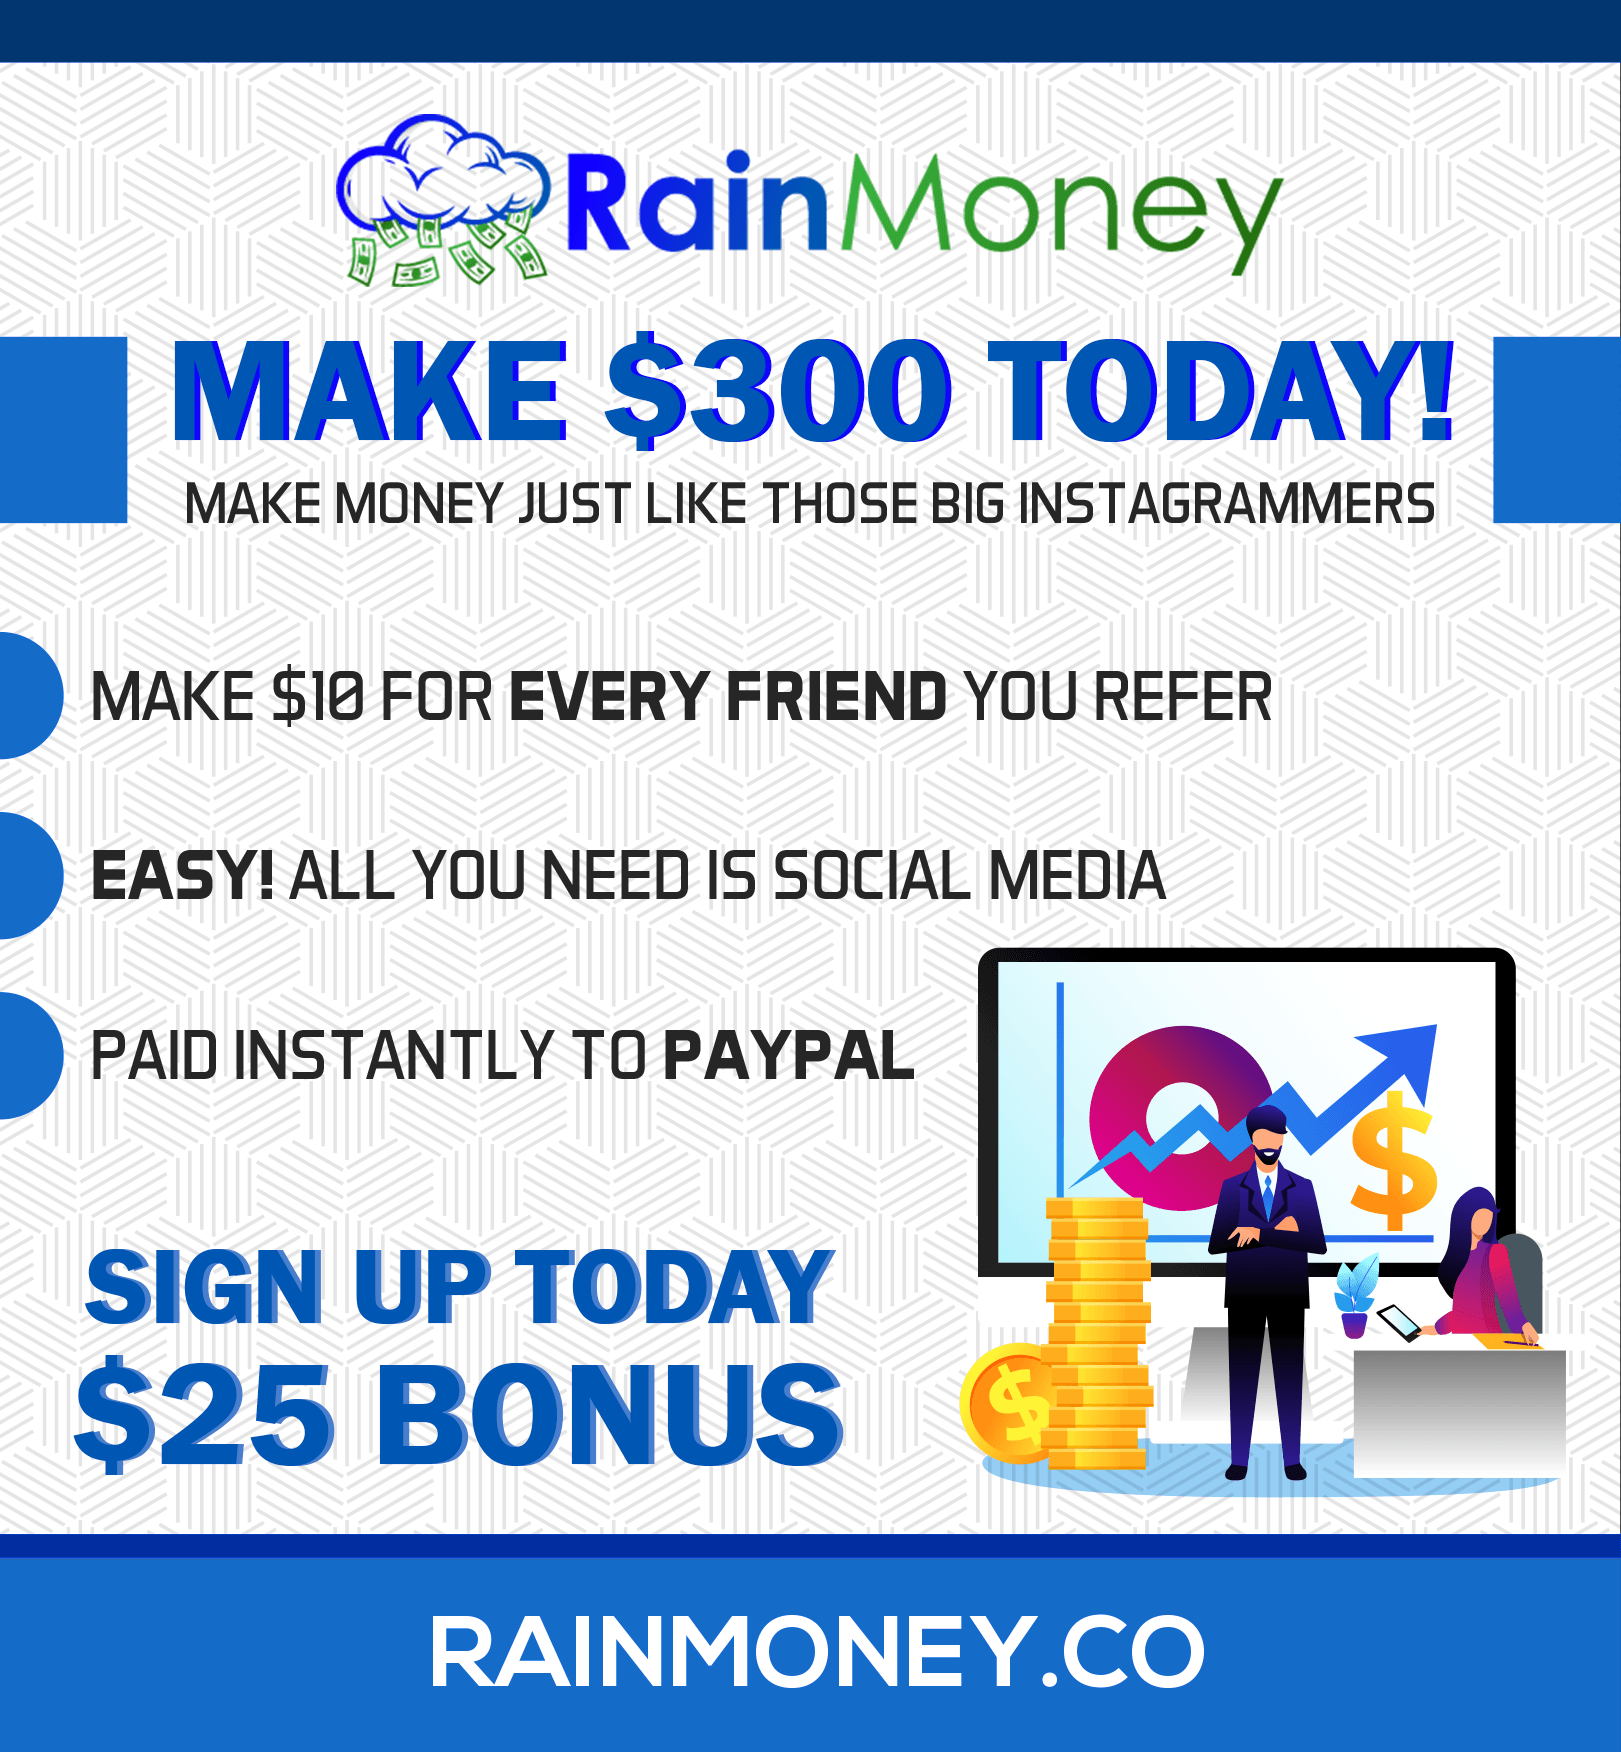 Monetize Your Social Media & Make Money Rain - RainMoney